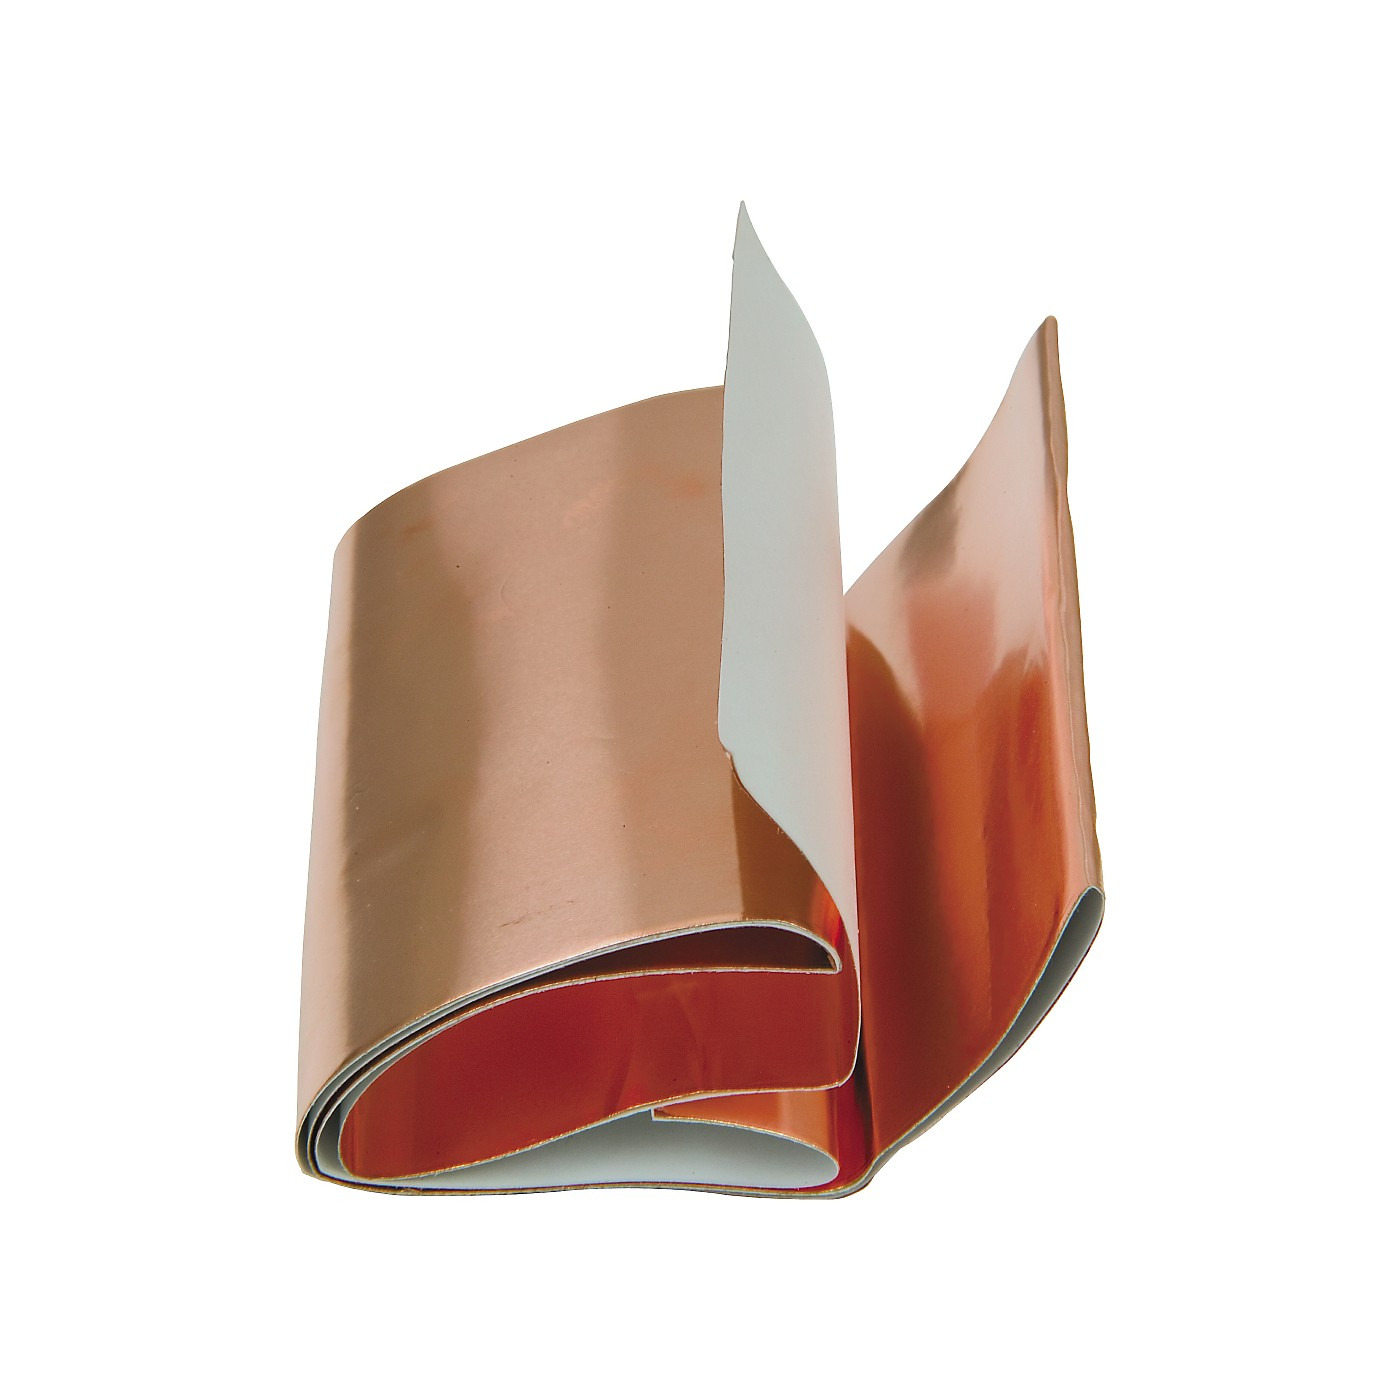 DiMarzio Copper Shielding Tape thumbnail